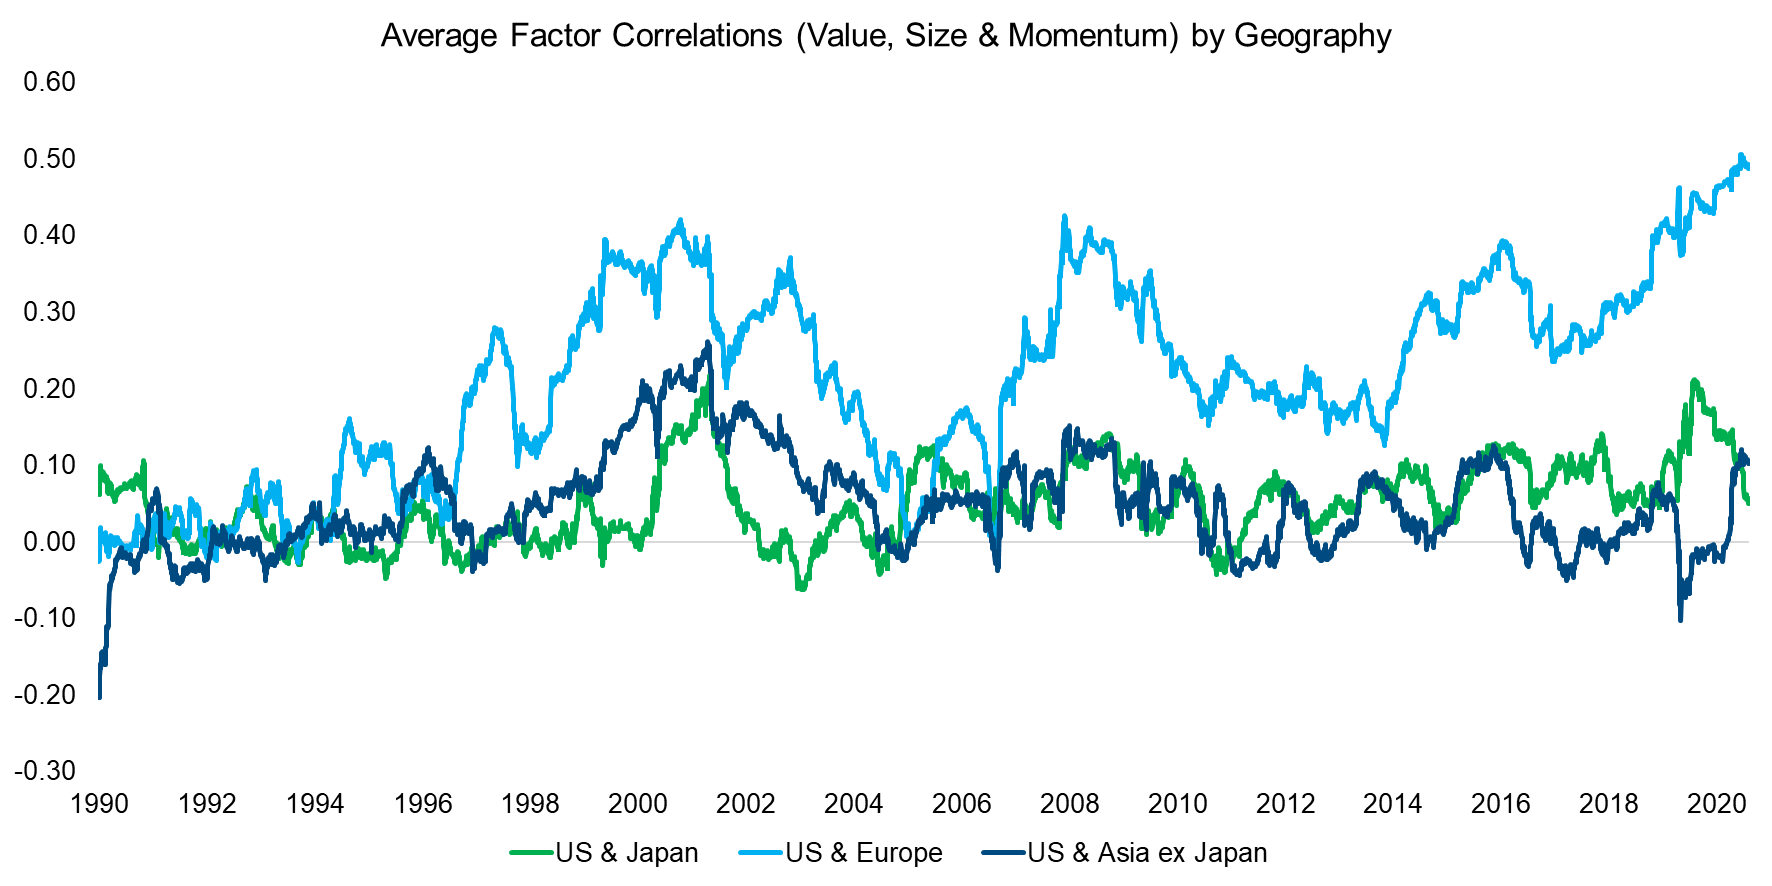 Average Factor Correlations (Value, Size & Momentum) by Geography